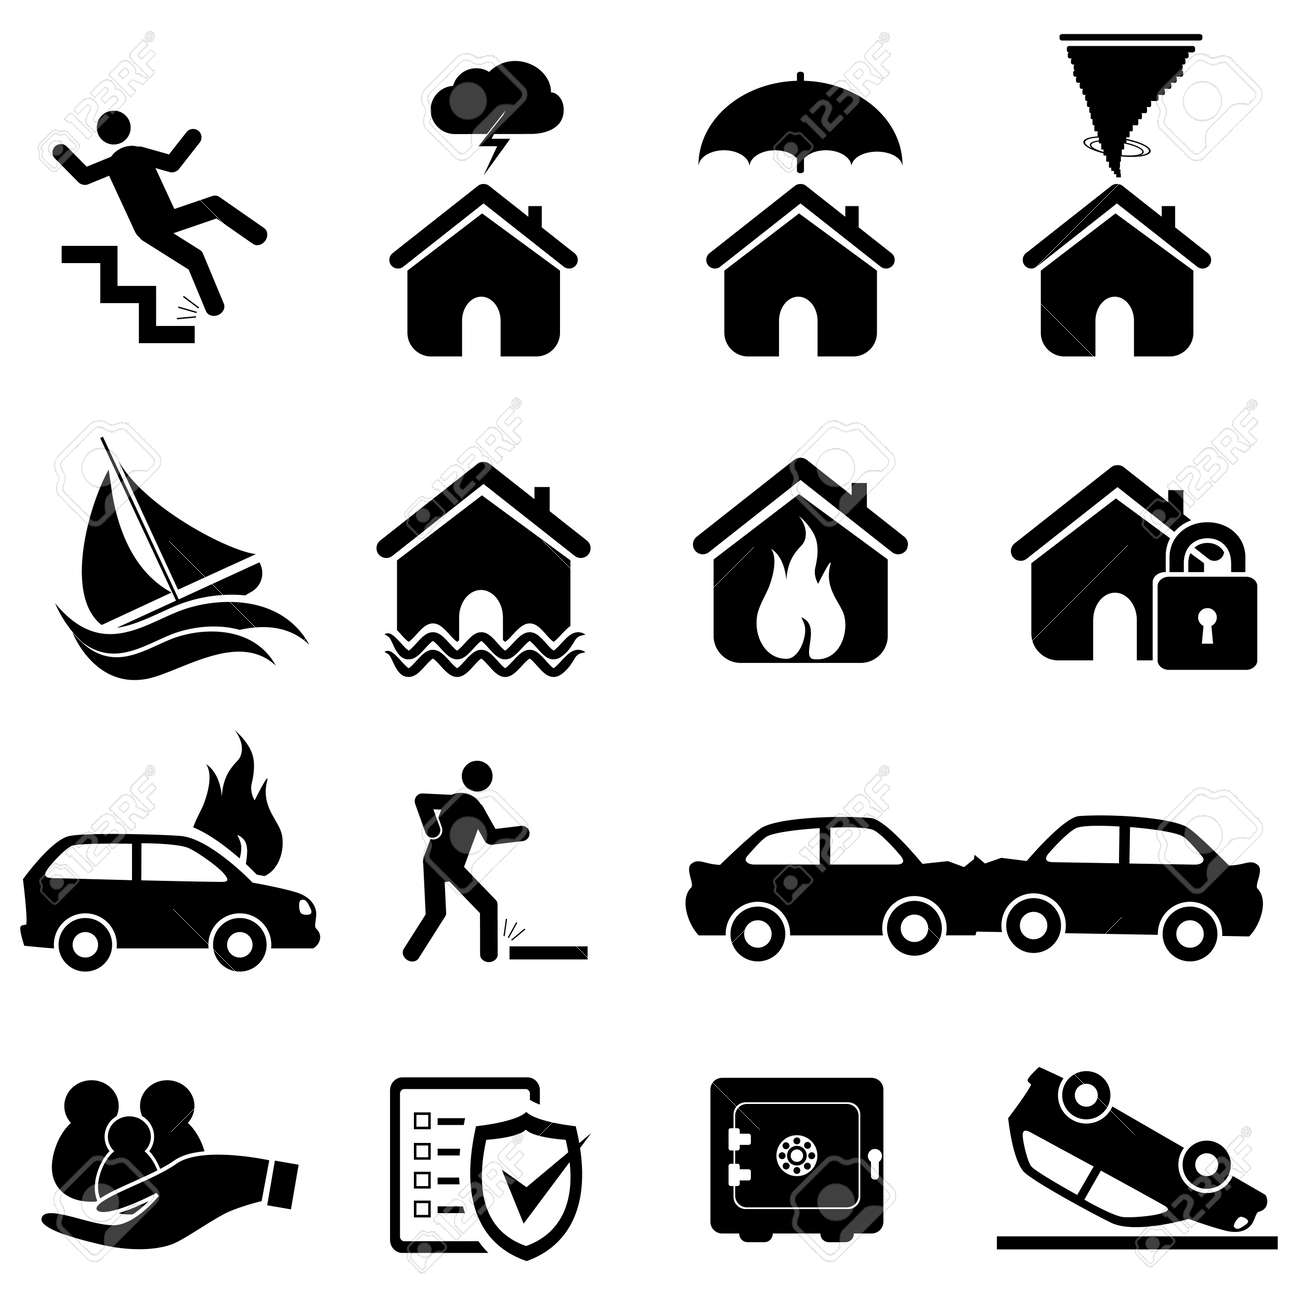 Insurance and disaster icon set - 18454701